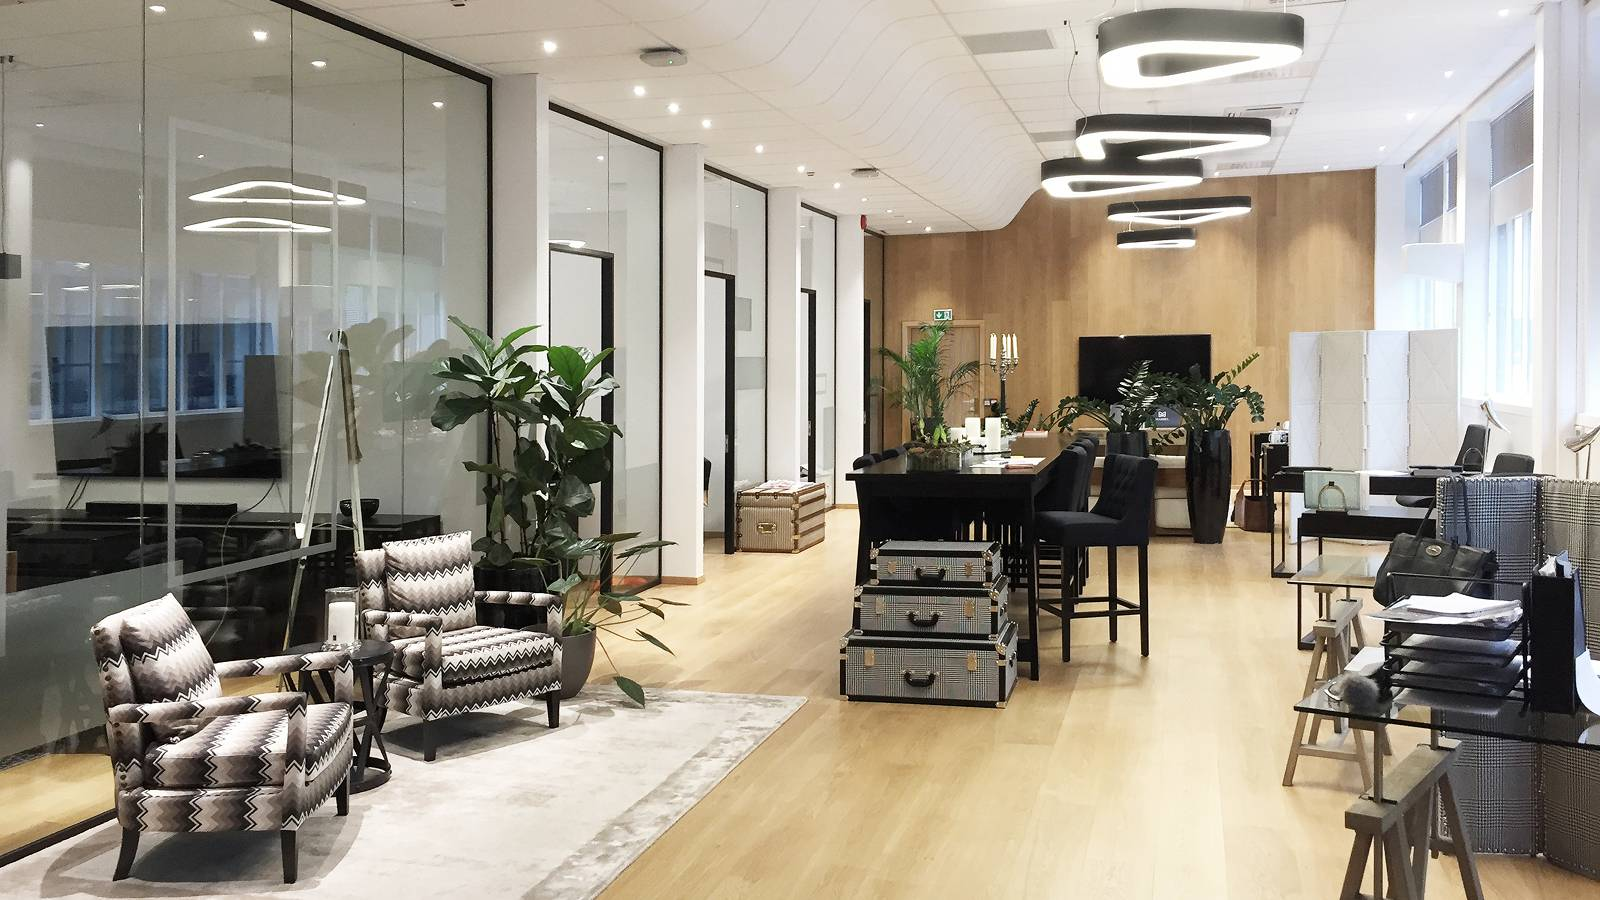 OFFICE SPACE LET OUT - Frontline Offices - SPOL Architects